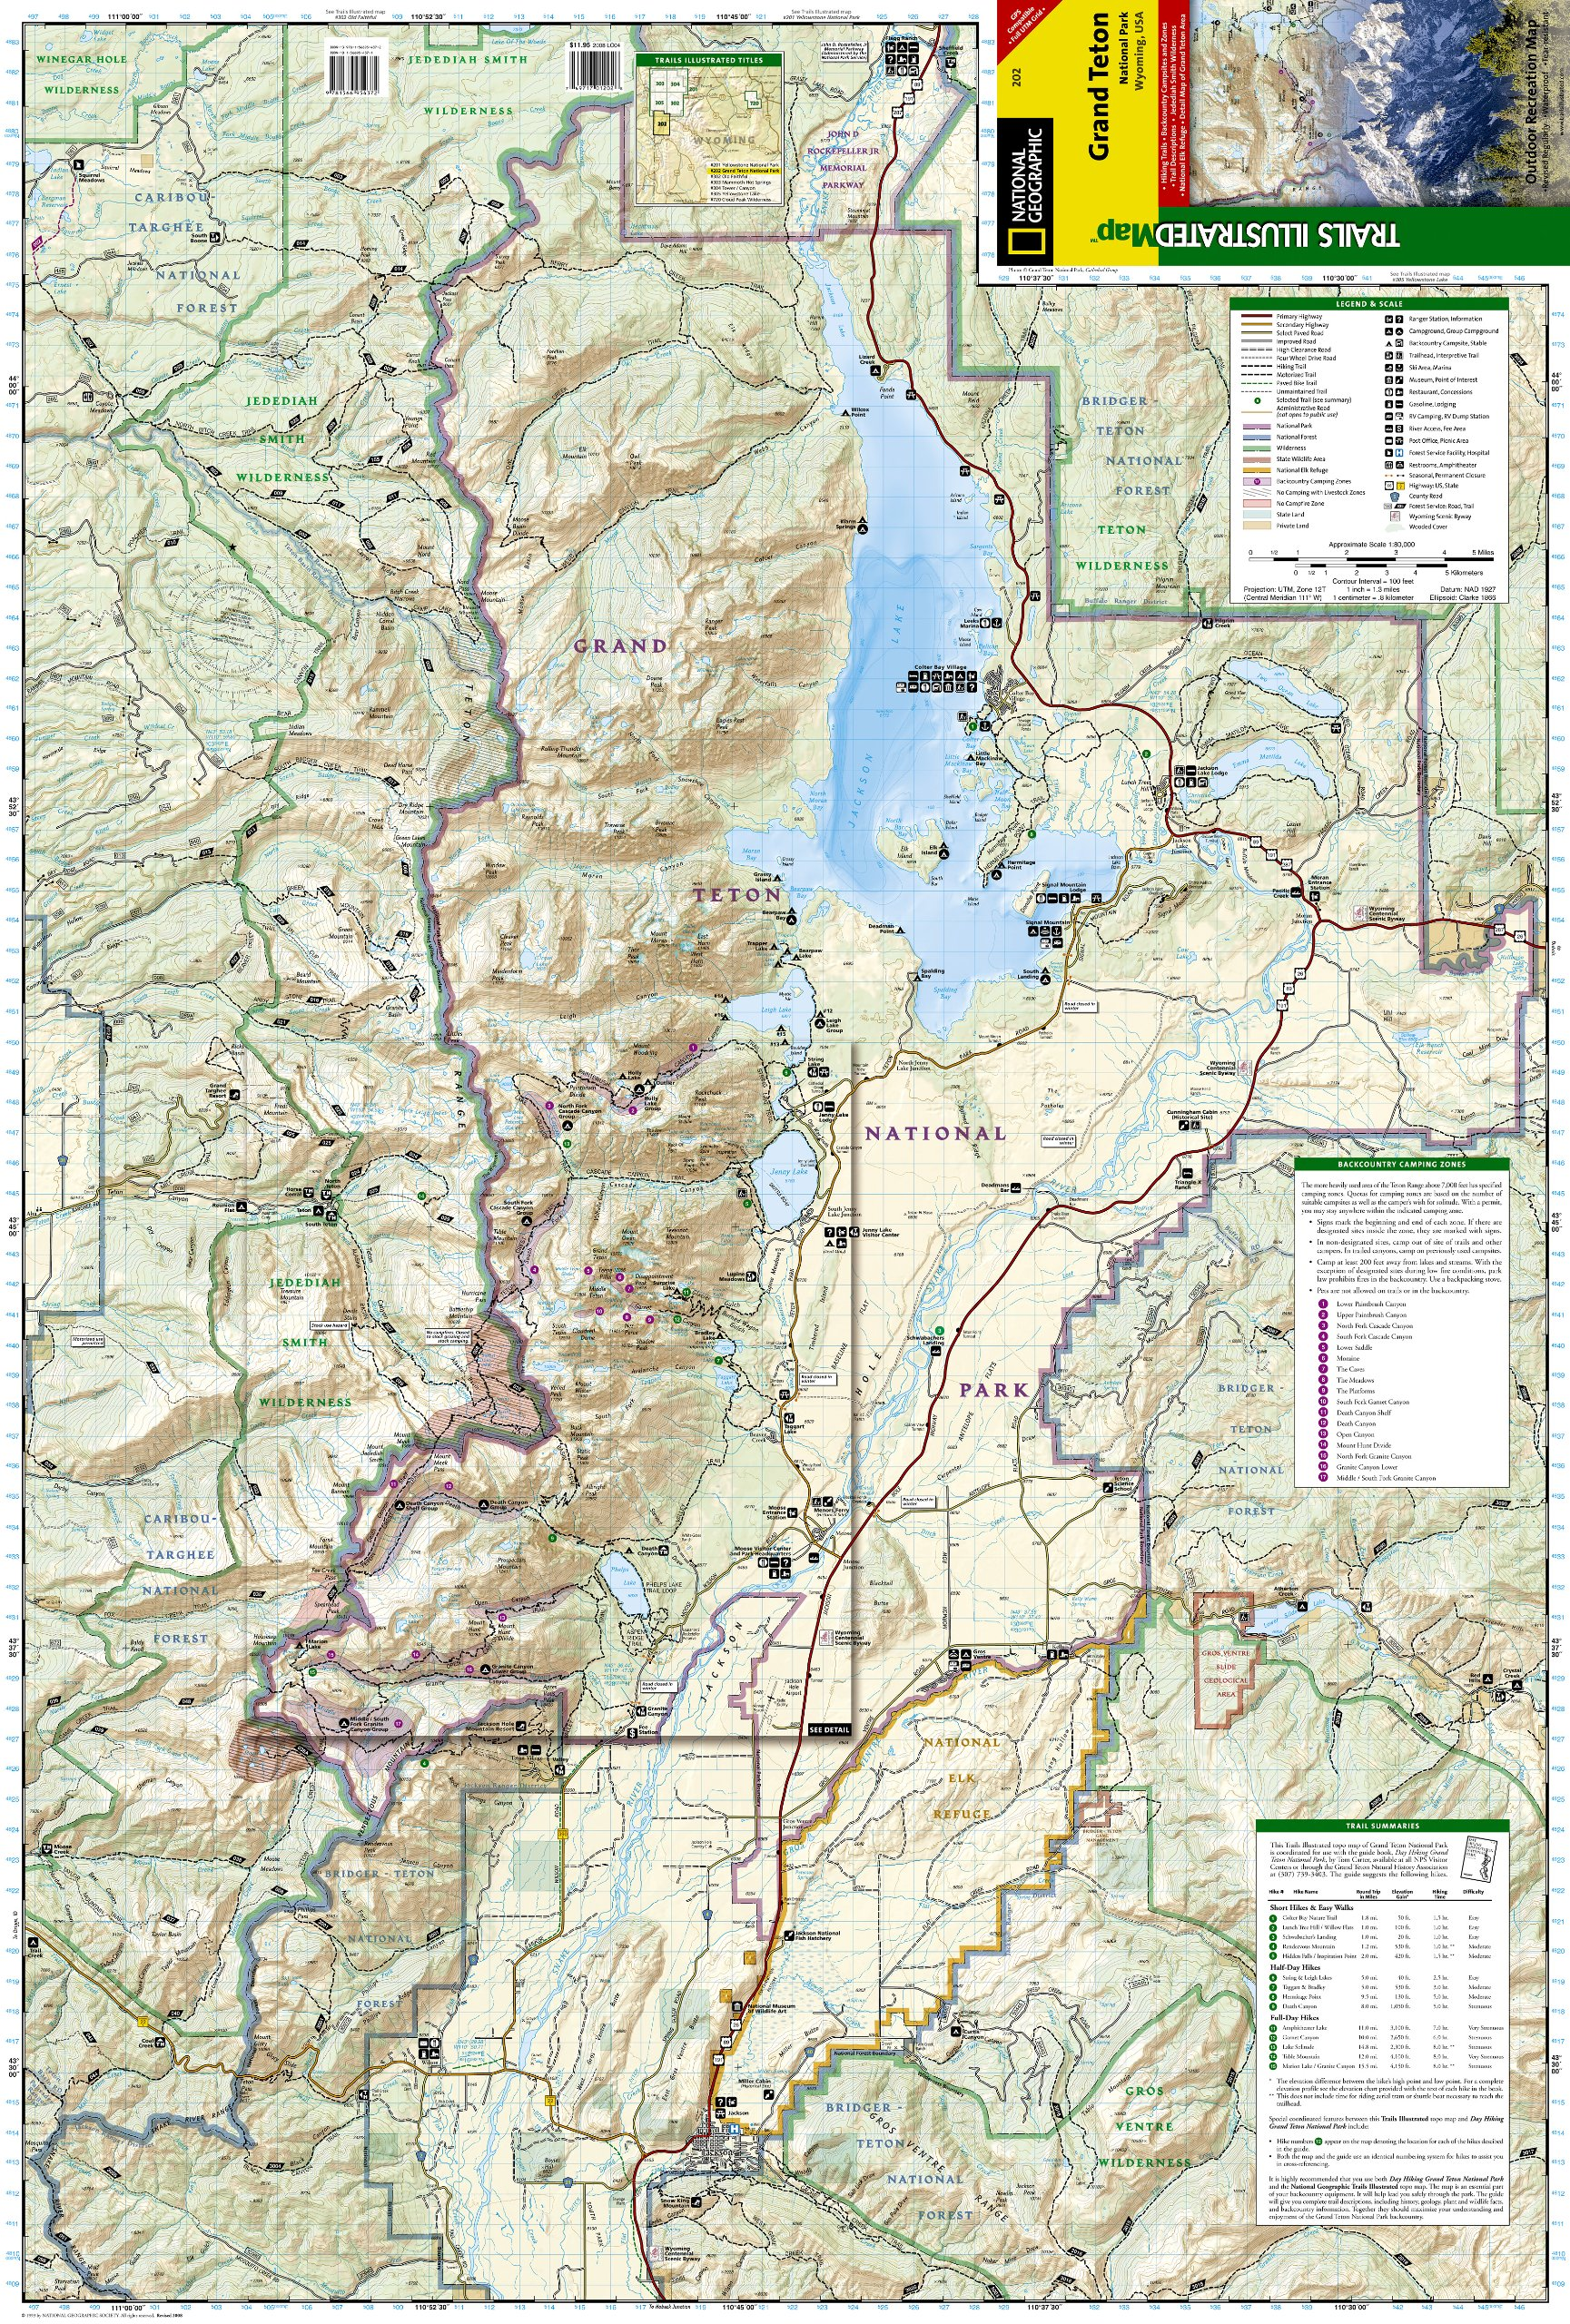 grand teton national park trails ilrated map 202 national geographic maps 9781566952965 amazon com books